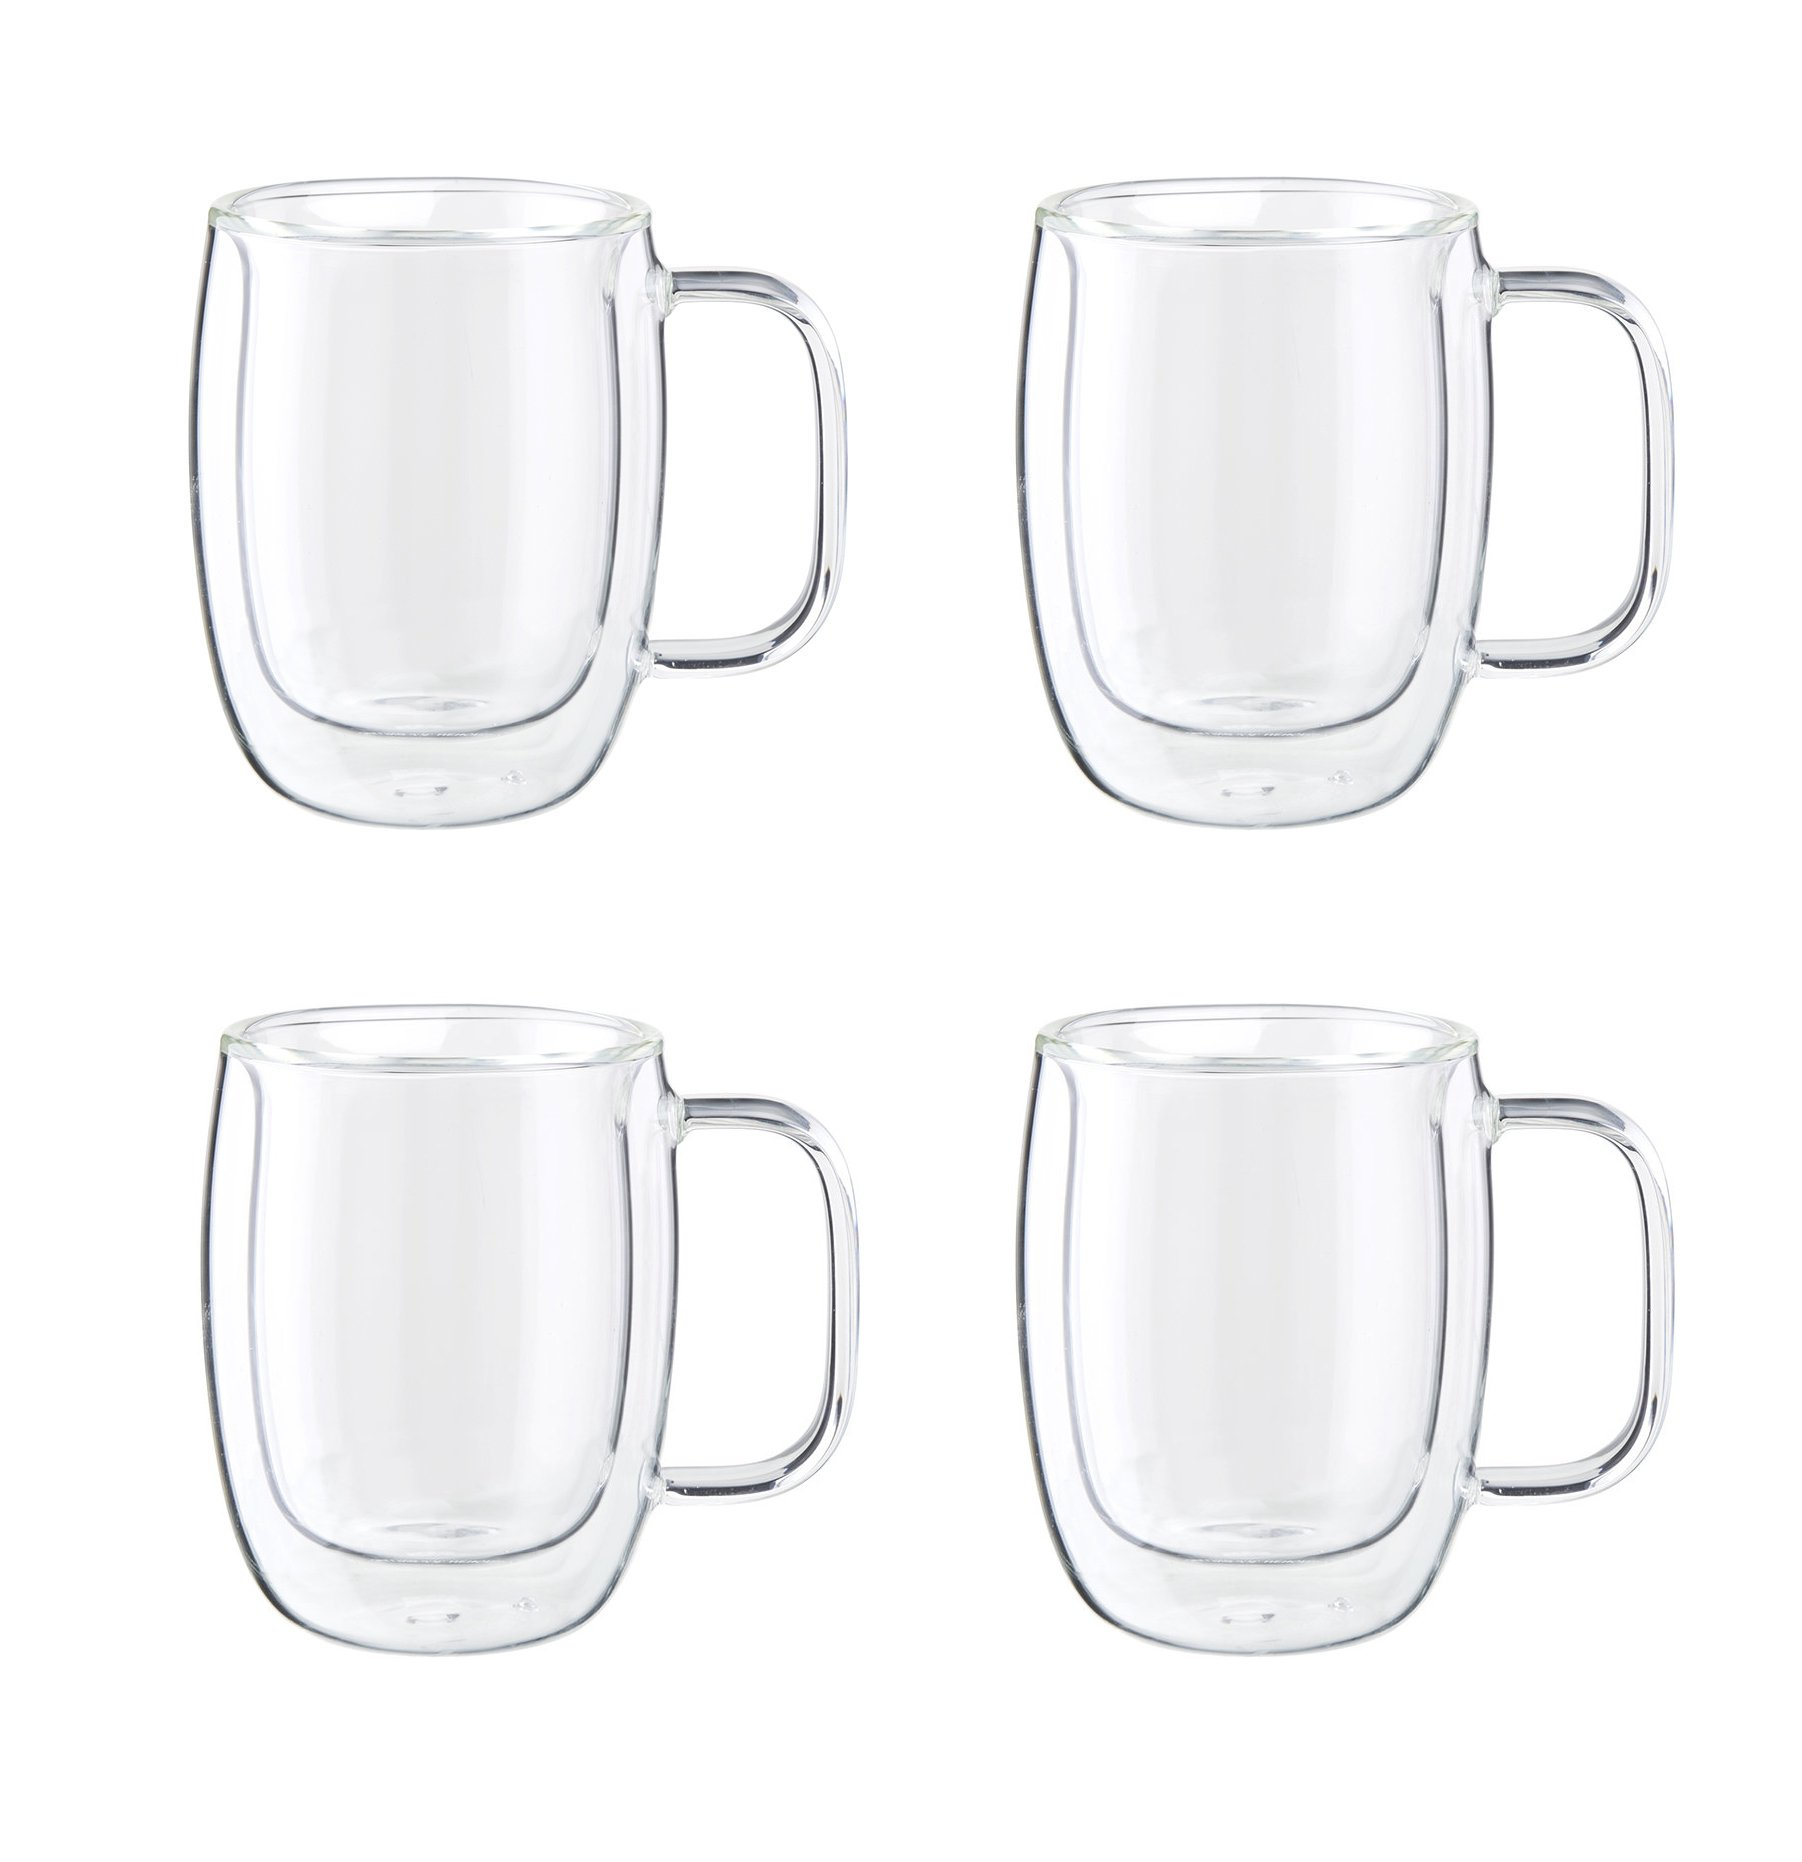 Zwilling J.A. Henckels Espresso Glass Mugs, 4.5 oz, Set of 4 , Clear With handle